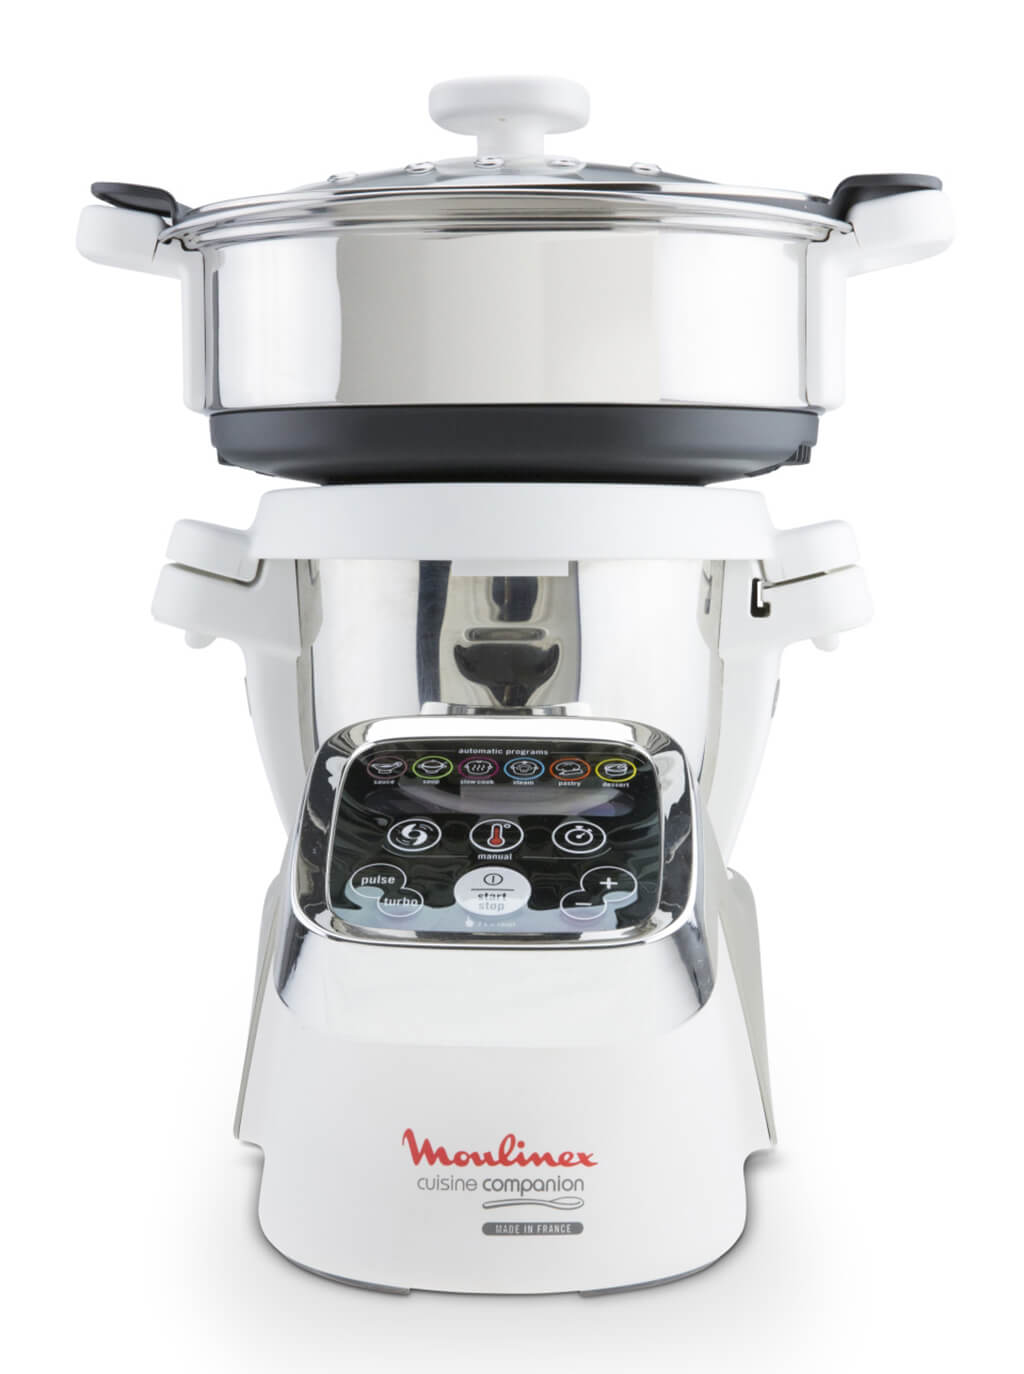 Moulinex cuisine companion pro for Cuisine companion